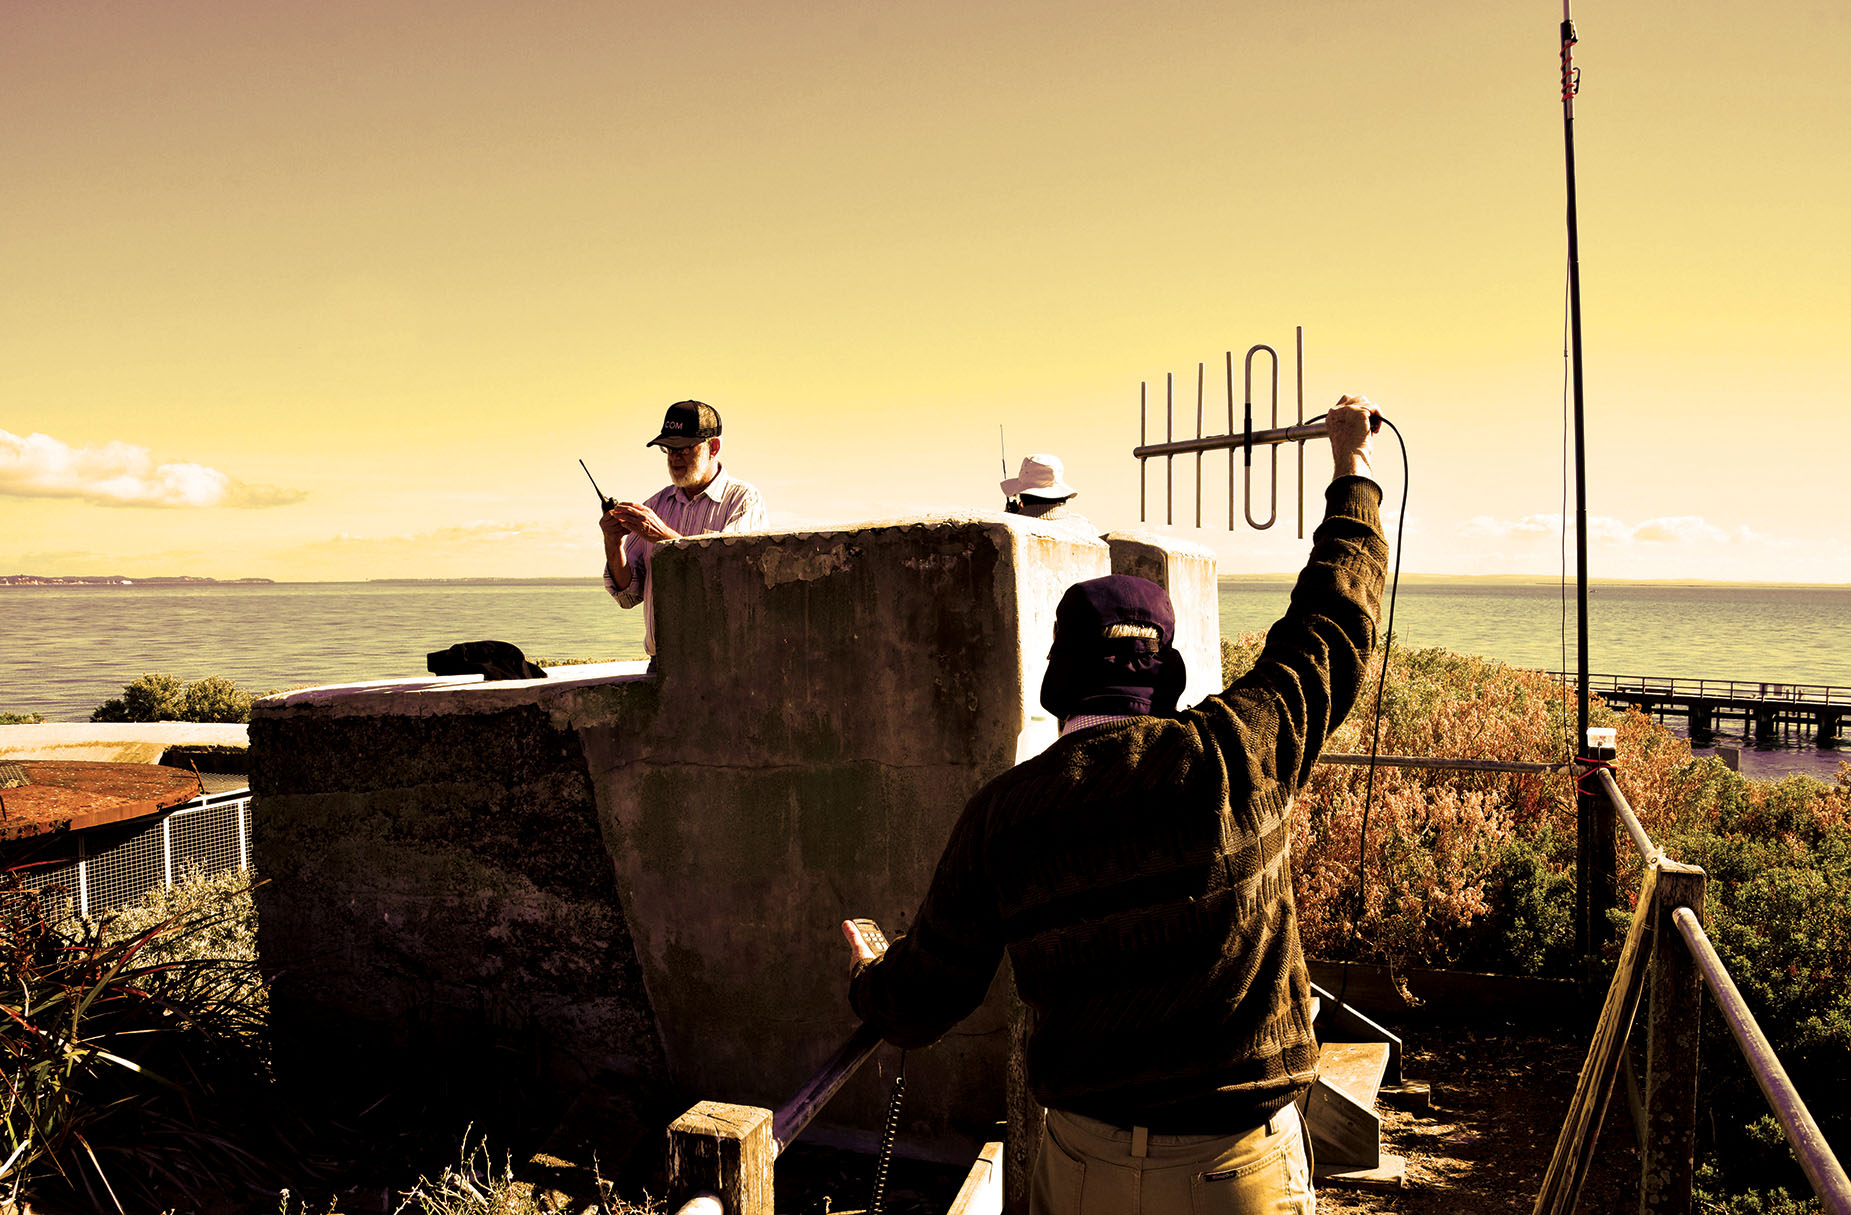 Postcard image 24 - Signal sending. Photography: Michael Morgan, Marita Batna.Creative Occupation stock image of field activity in collaboration with Geelong Amateur Radio Club at South Channel Fort Island, 2018.